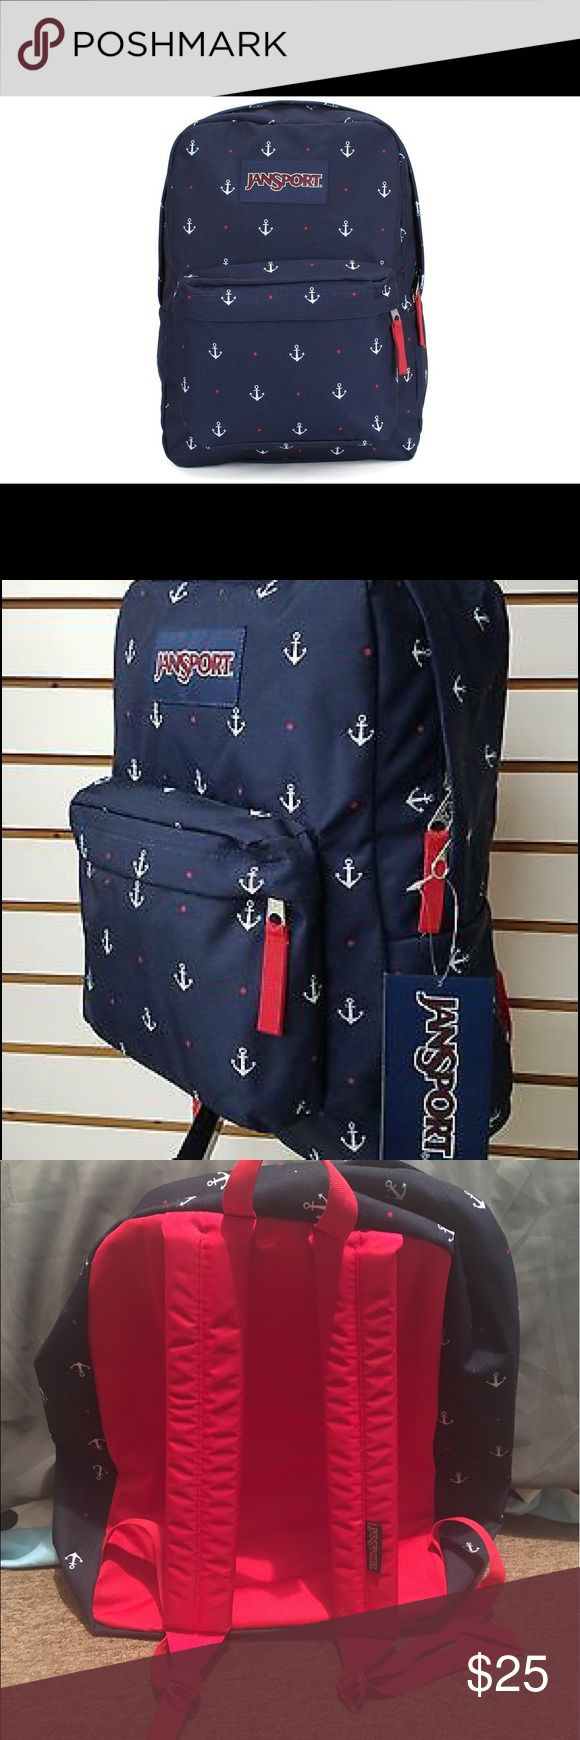 jansport anchor backpack completely new! jansport anchor backpack completely new! Never been use, very cute! Jansport Bags Backpacks